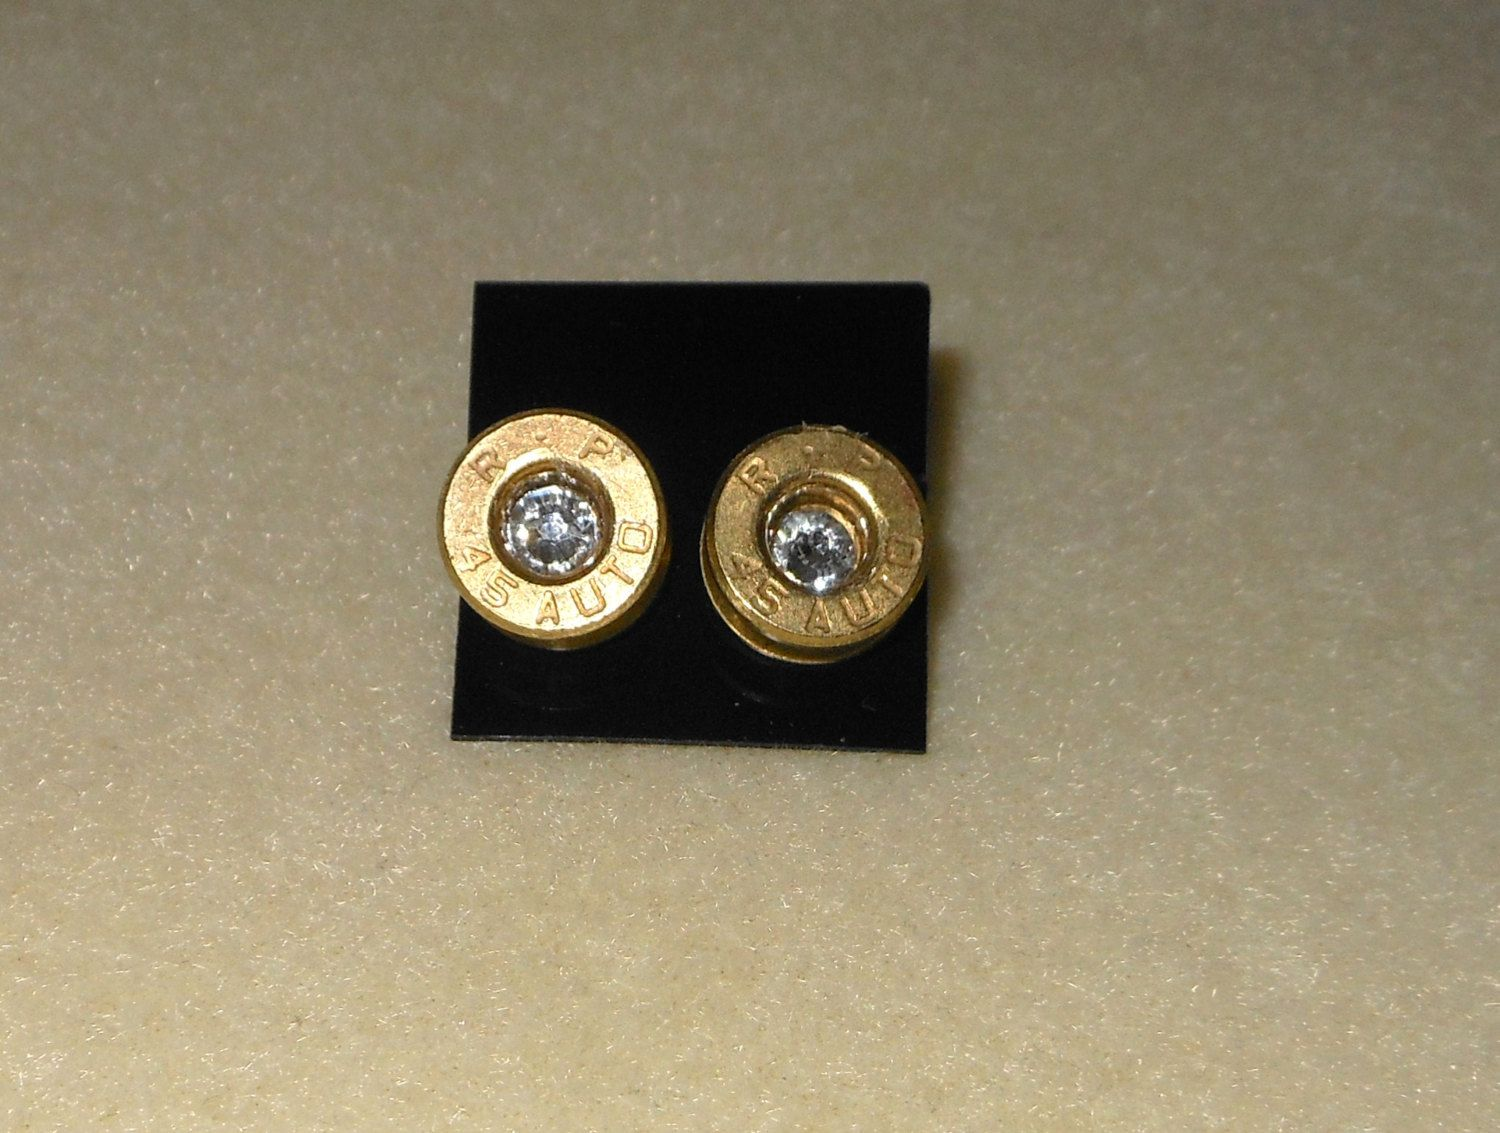 Bullet Shell casing Earrings/Remington Peters 45 Automatic shells/pierced earrings/bullet 45 earrings with crystals clear by CreationsbyMaryEllen on Etsy